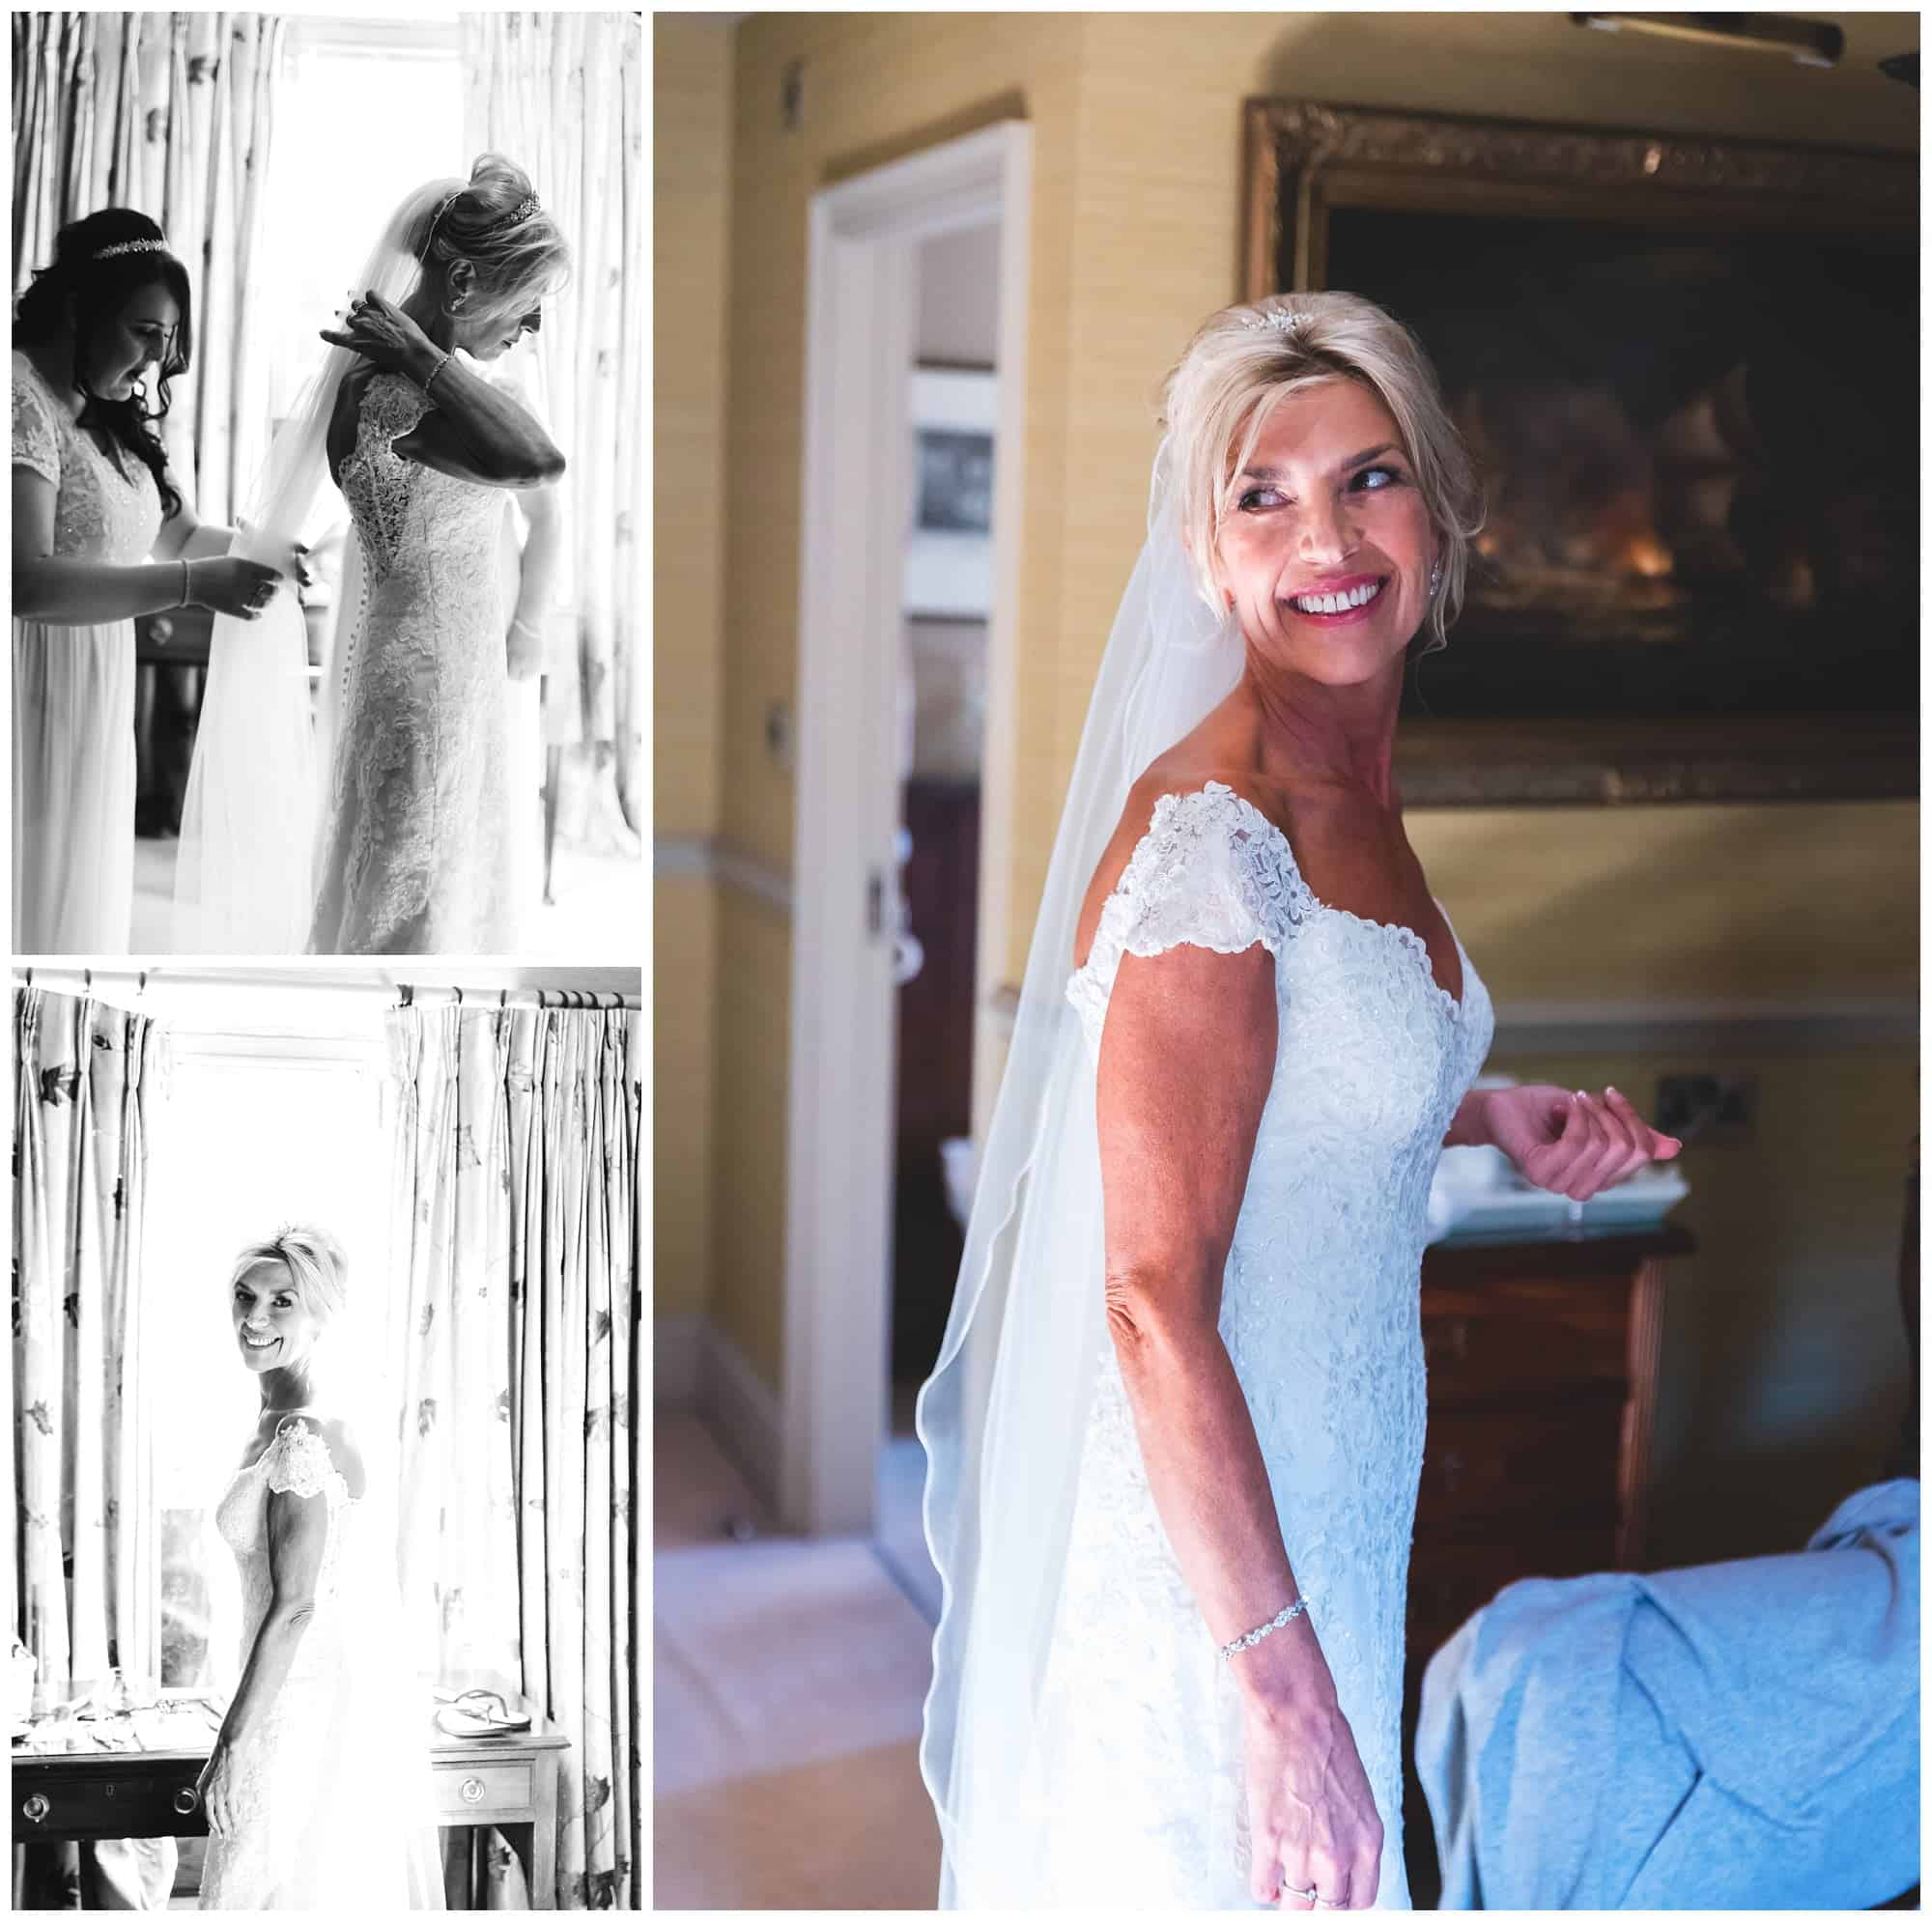 Whitley Hall Hotel Wedding - bride prep show in room